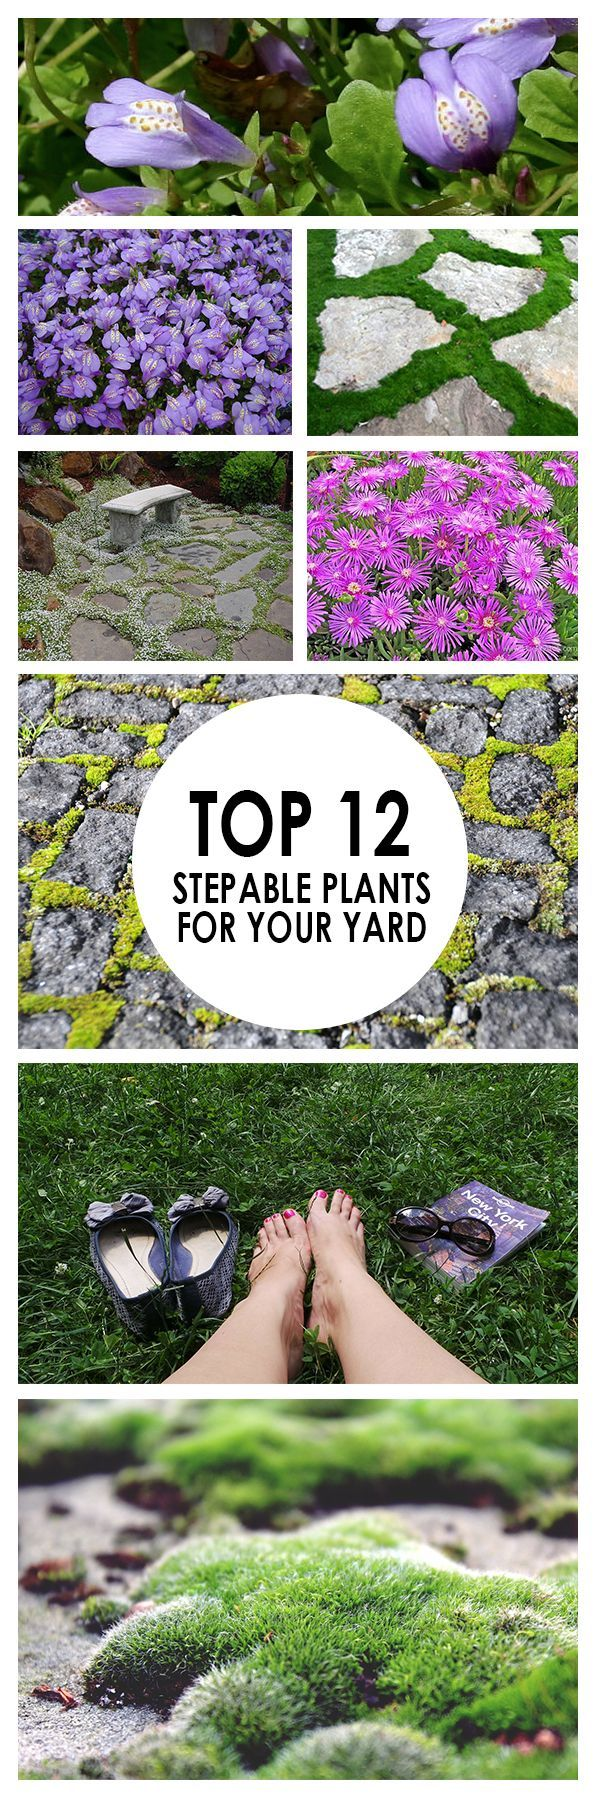 Top stepable plants for your yard vegetable garden pinterest